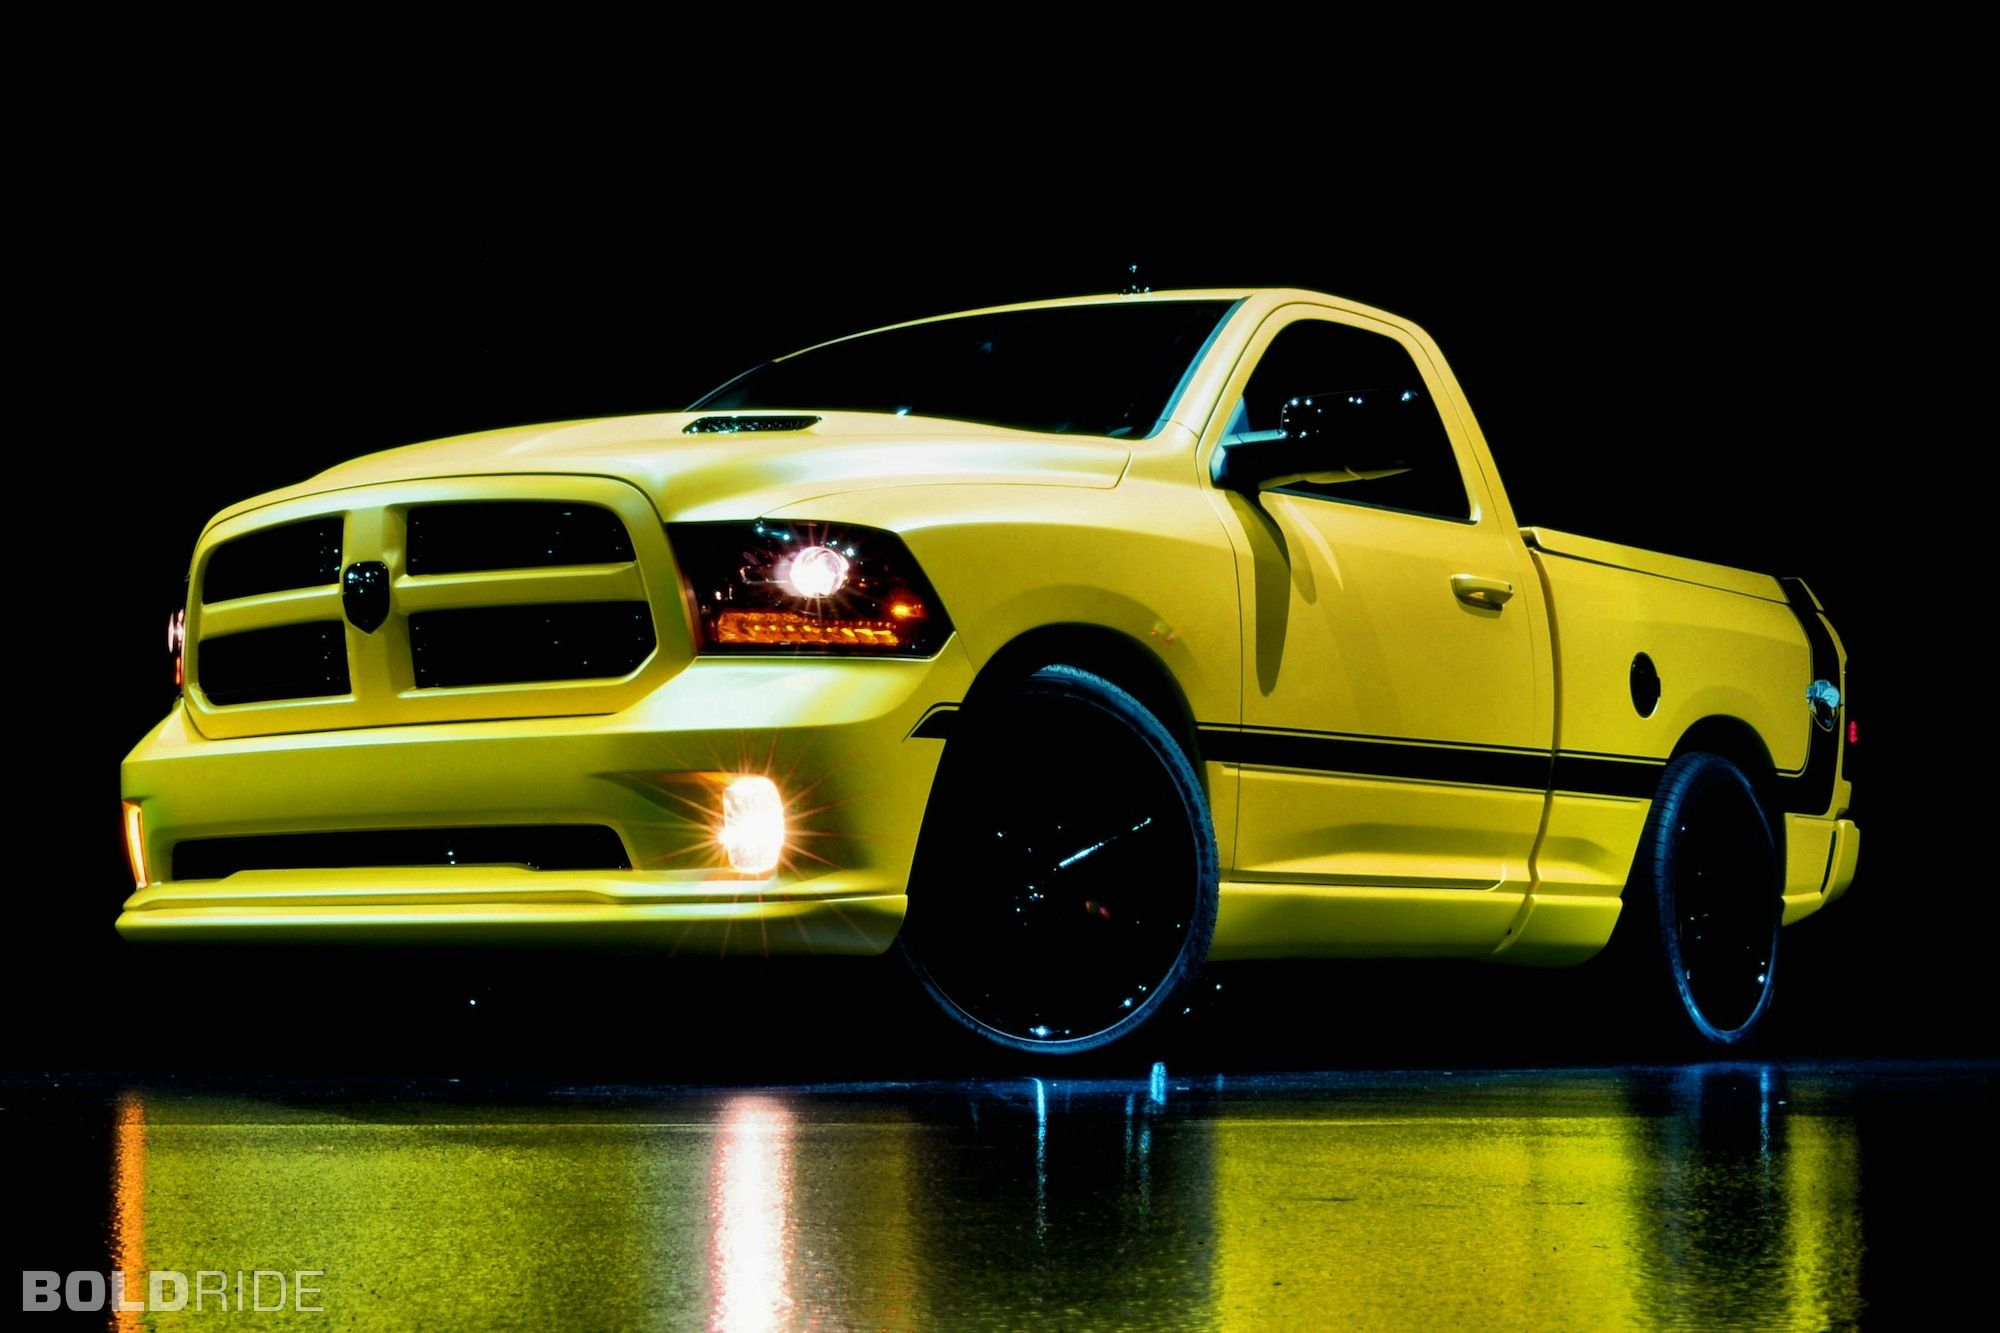 Dodge ram 1500 rumble bee muscle concept pickup concept car were manufactured pinterest dodge ram 1500 dodge rams and dodge